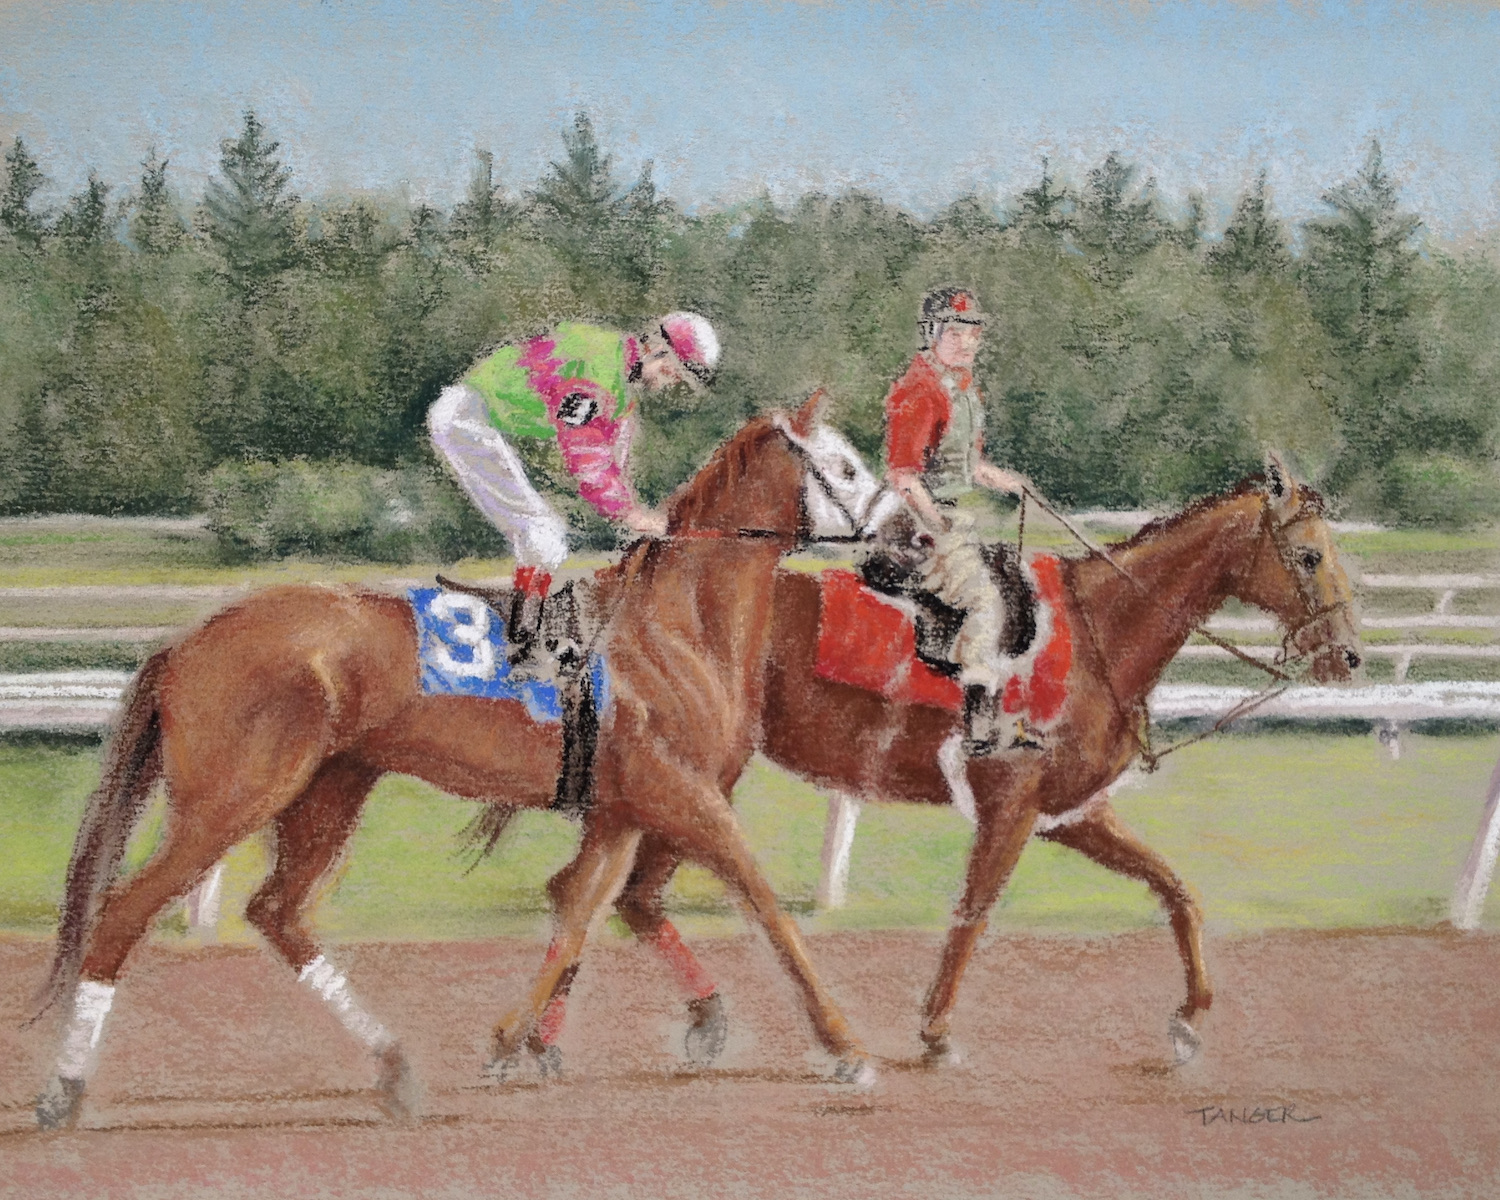 pastel painting of jockey on thoroughbred and outriders on pony after a race